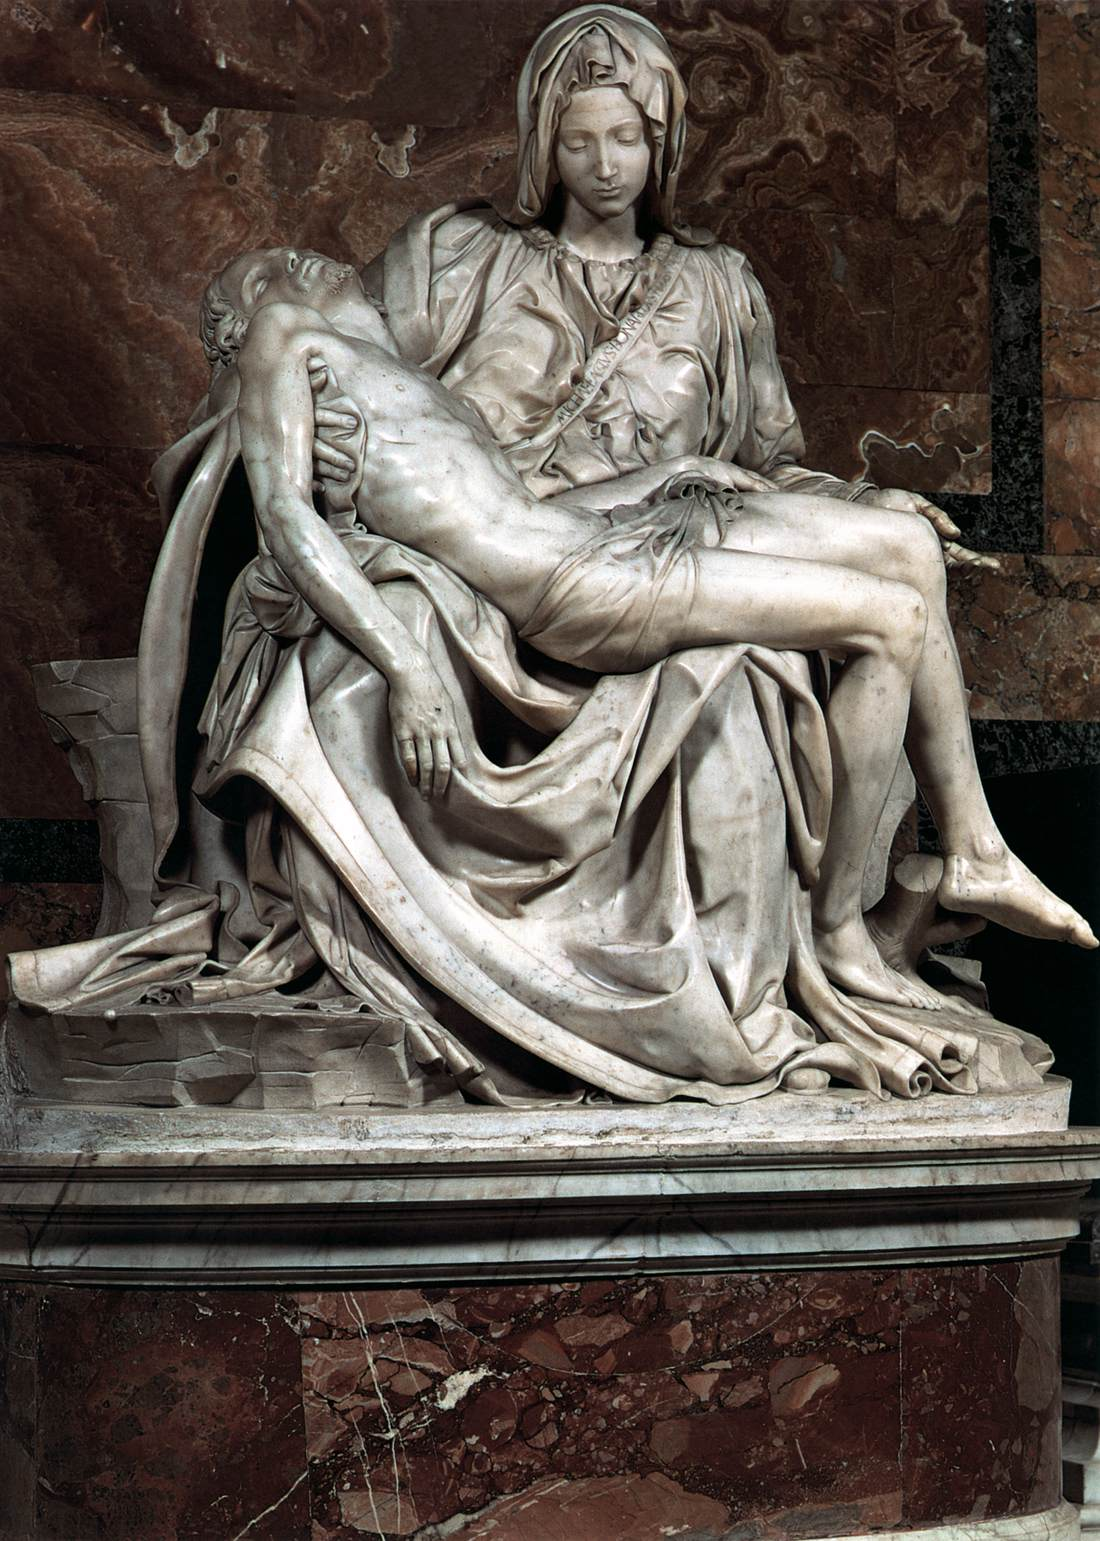 the early florentine years in the life of michelangelo Quiz & worksheet - michelangelo's life florentine village knowledge application - use your knowledge to answer a question about michelangelo's early years.